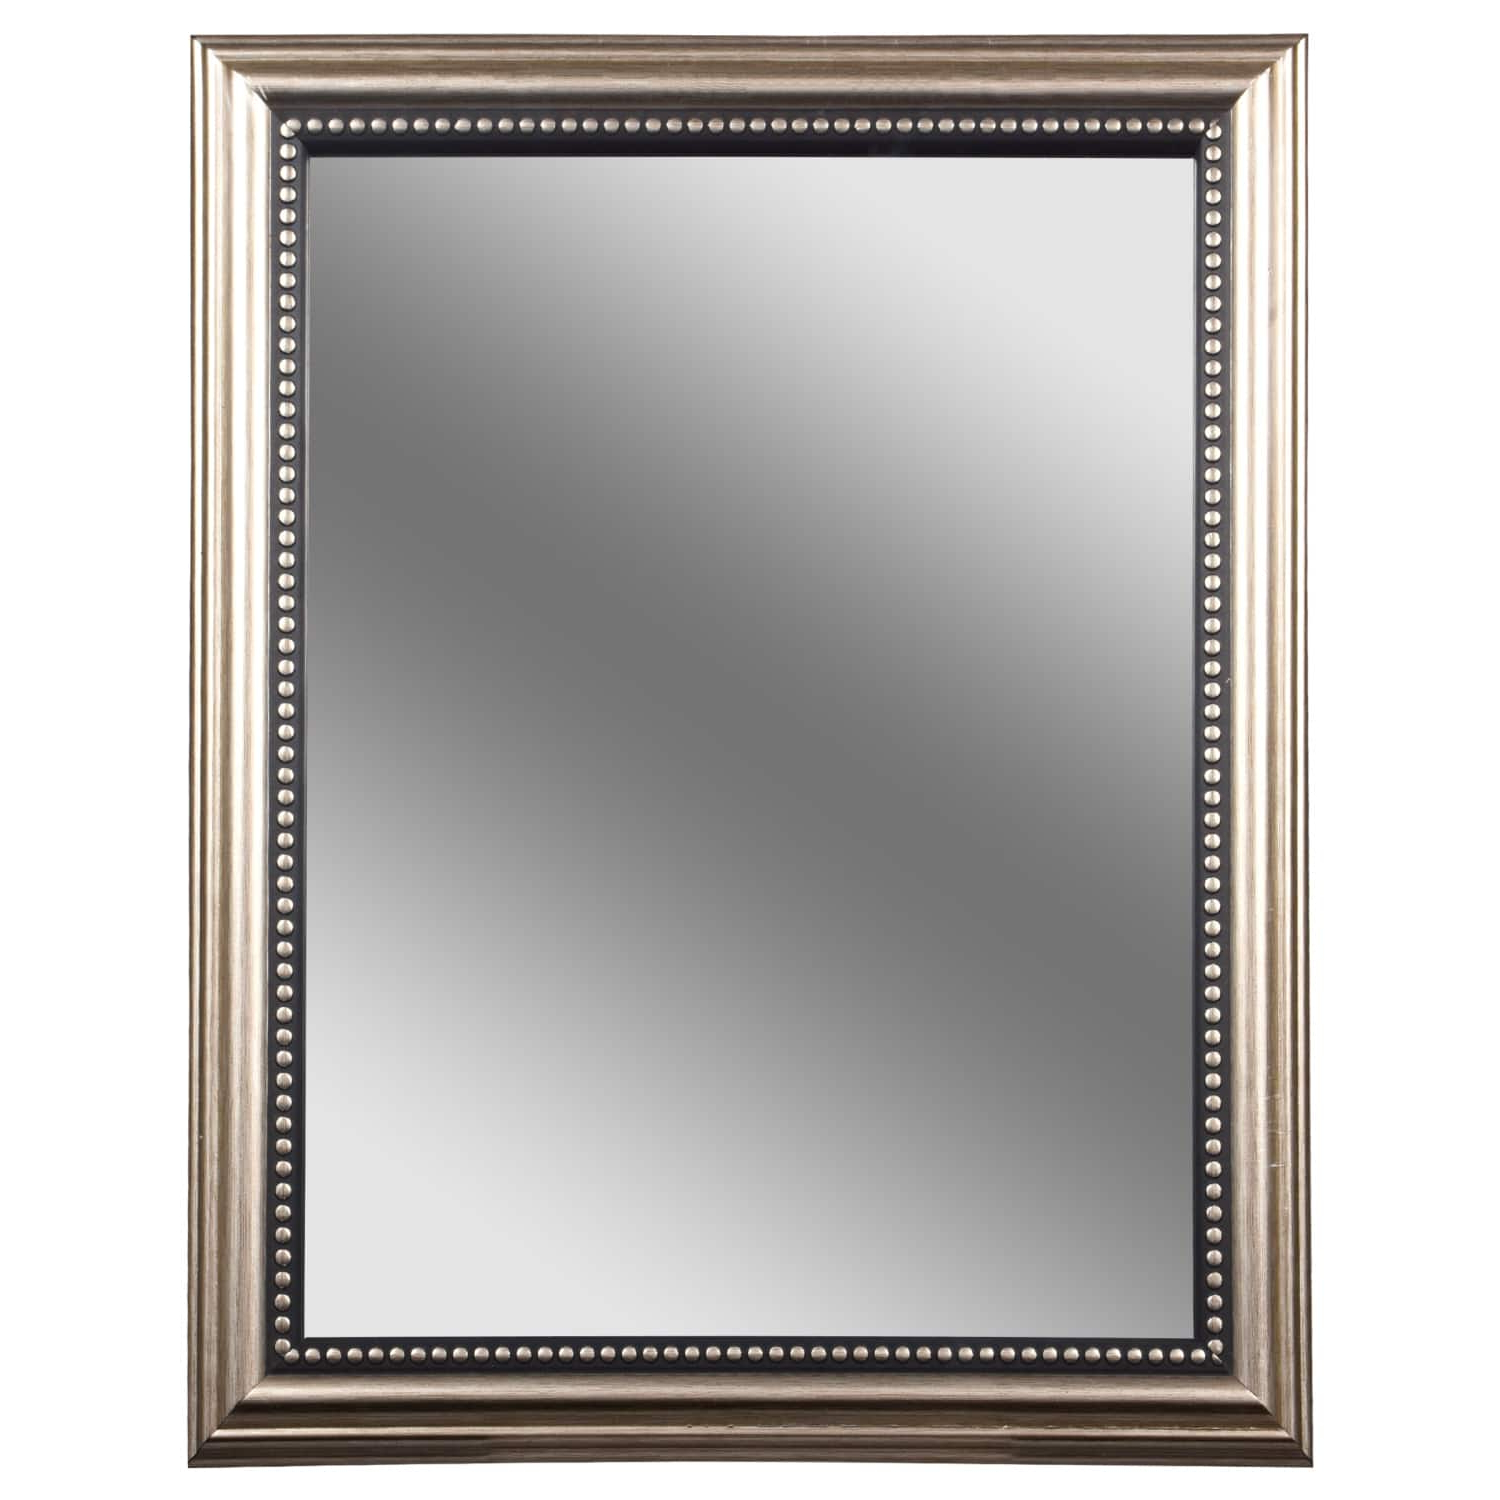 Bulk Accent Mirrors With Silver Plastic Frames For Well Known Accent Mirrors (View 19 of 20)